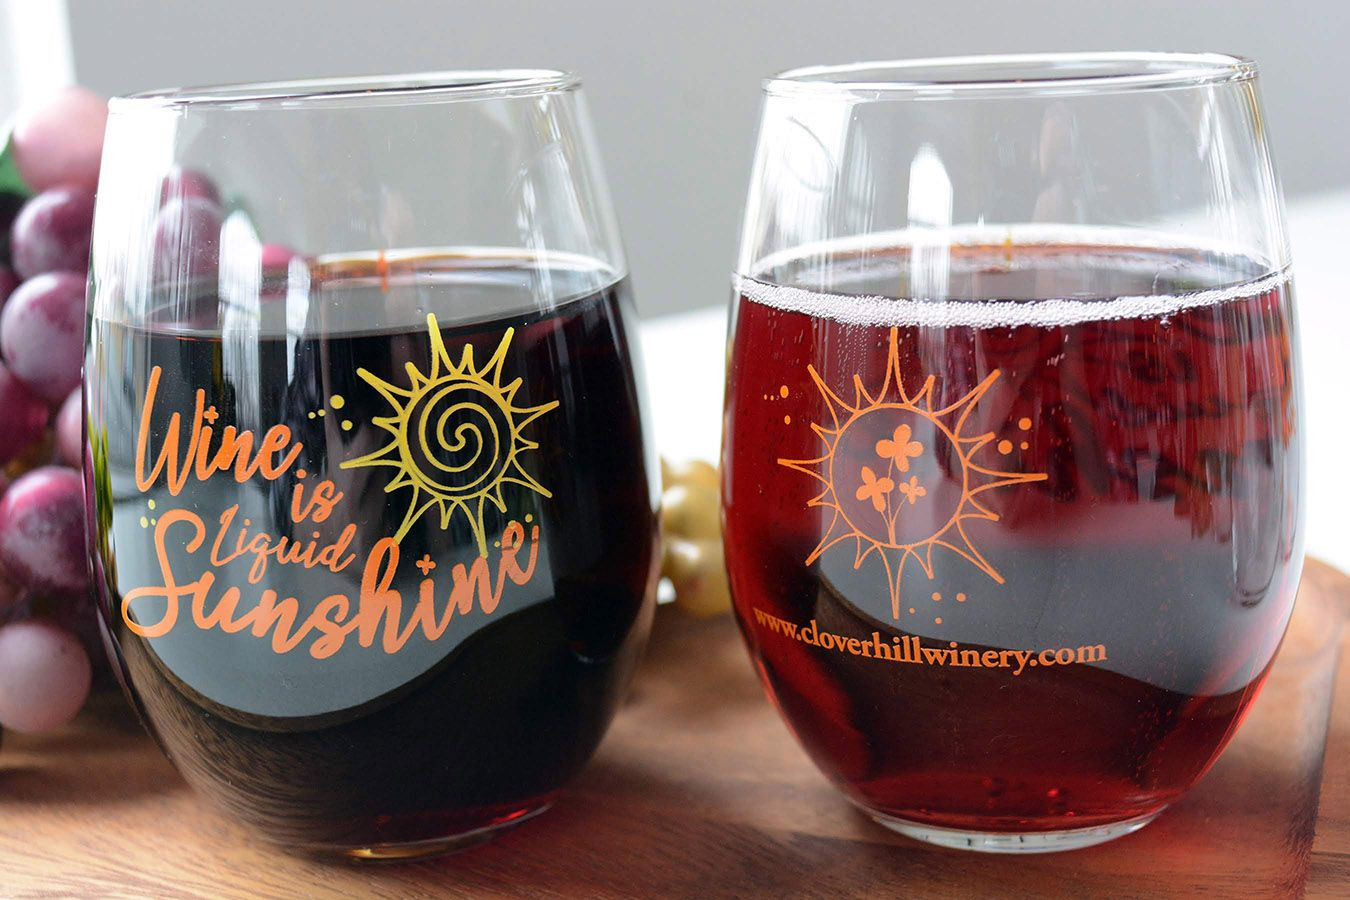 Stop By Any Of Our Four Clover Hill Vineyards Winery Locations And Pick Up Our New Limited Edition Stemless Stemless Wine Glasses Wine Gifts For Wine Lovers